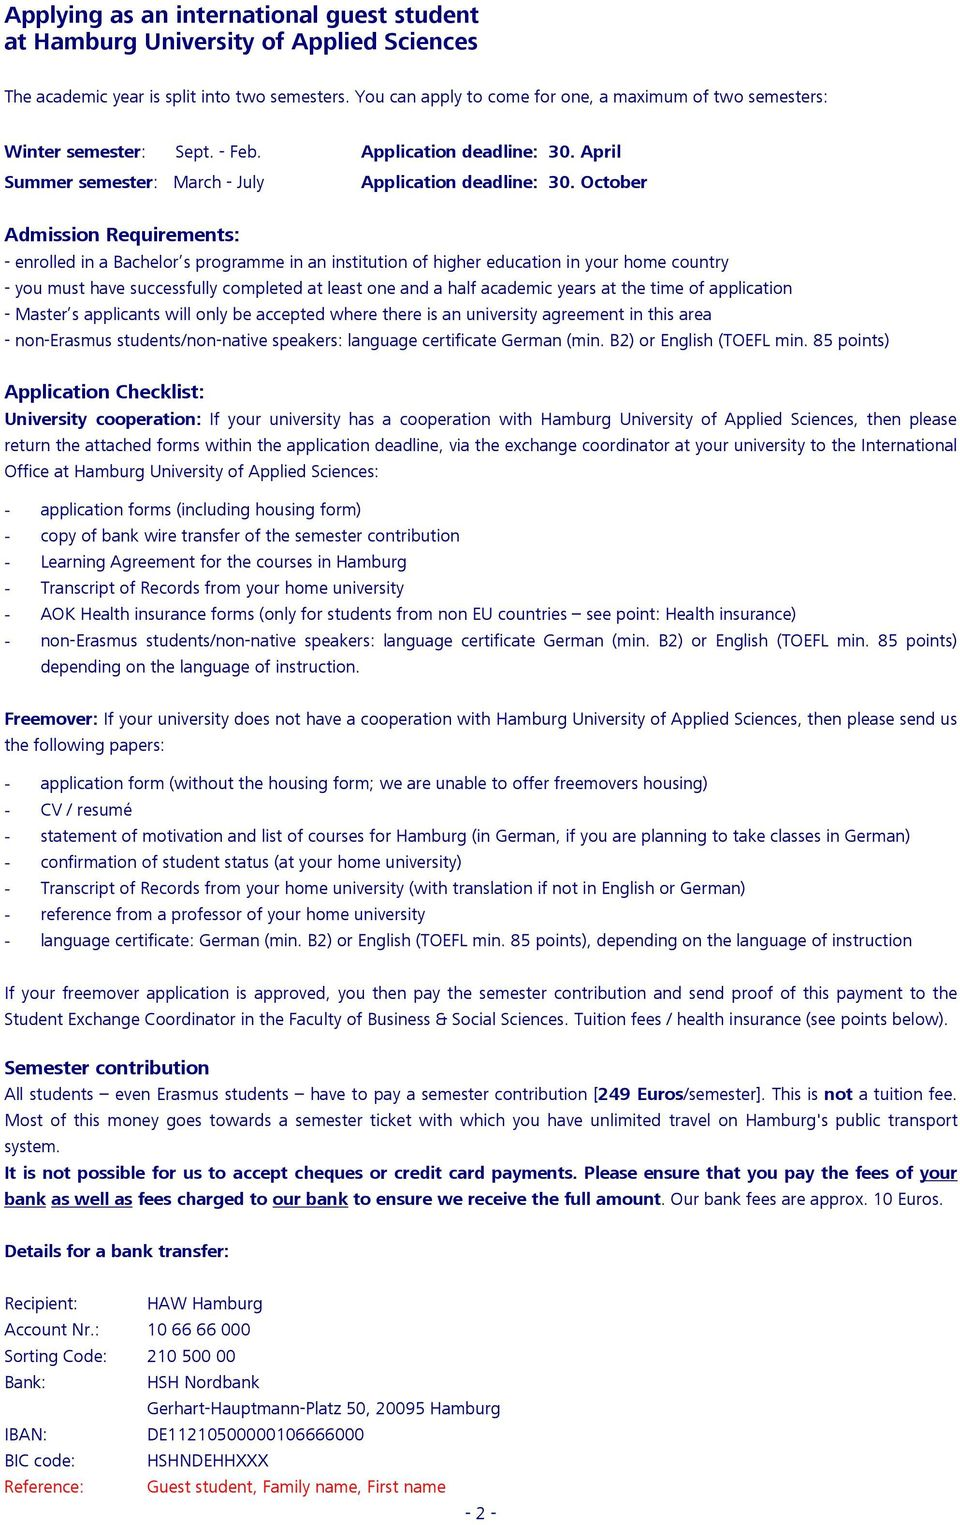 International Guest Students APPLICATION FORM - PDF